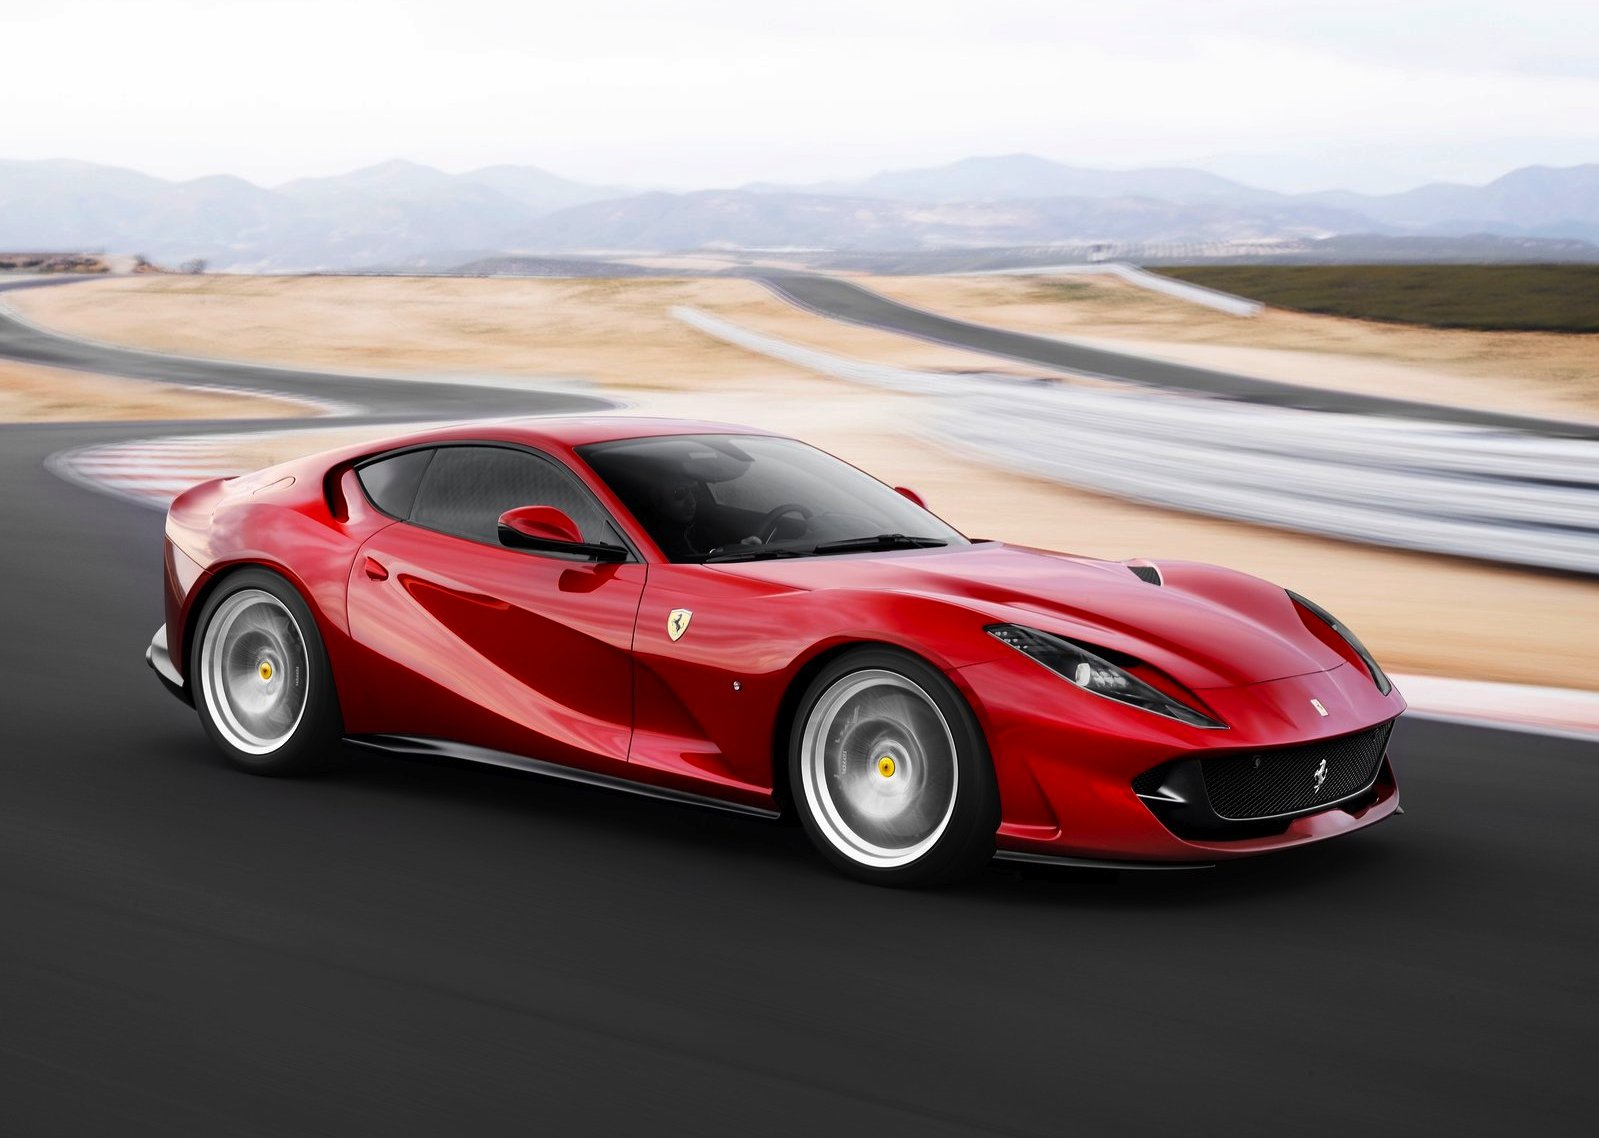 /data/MediaLibrary/articles/11177/ferrari-812-superfast.jpg